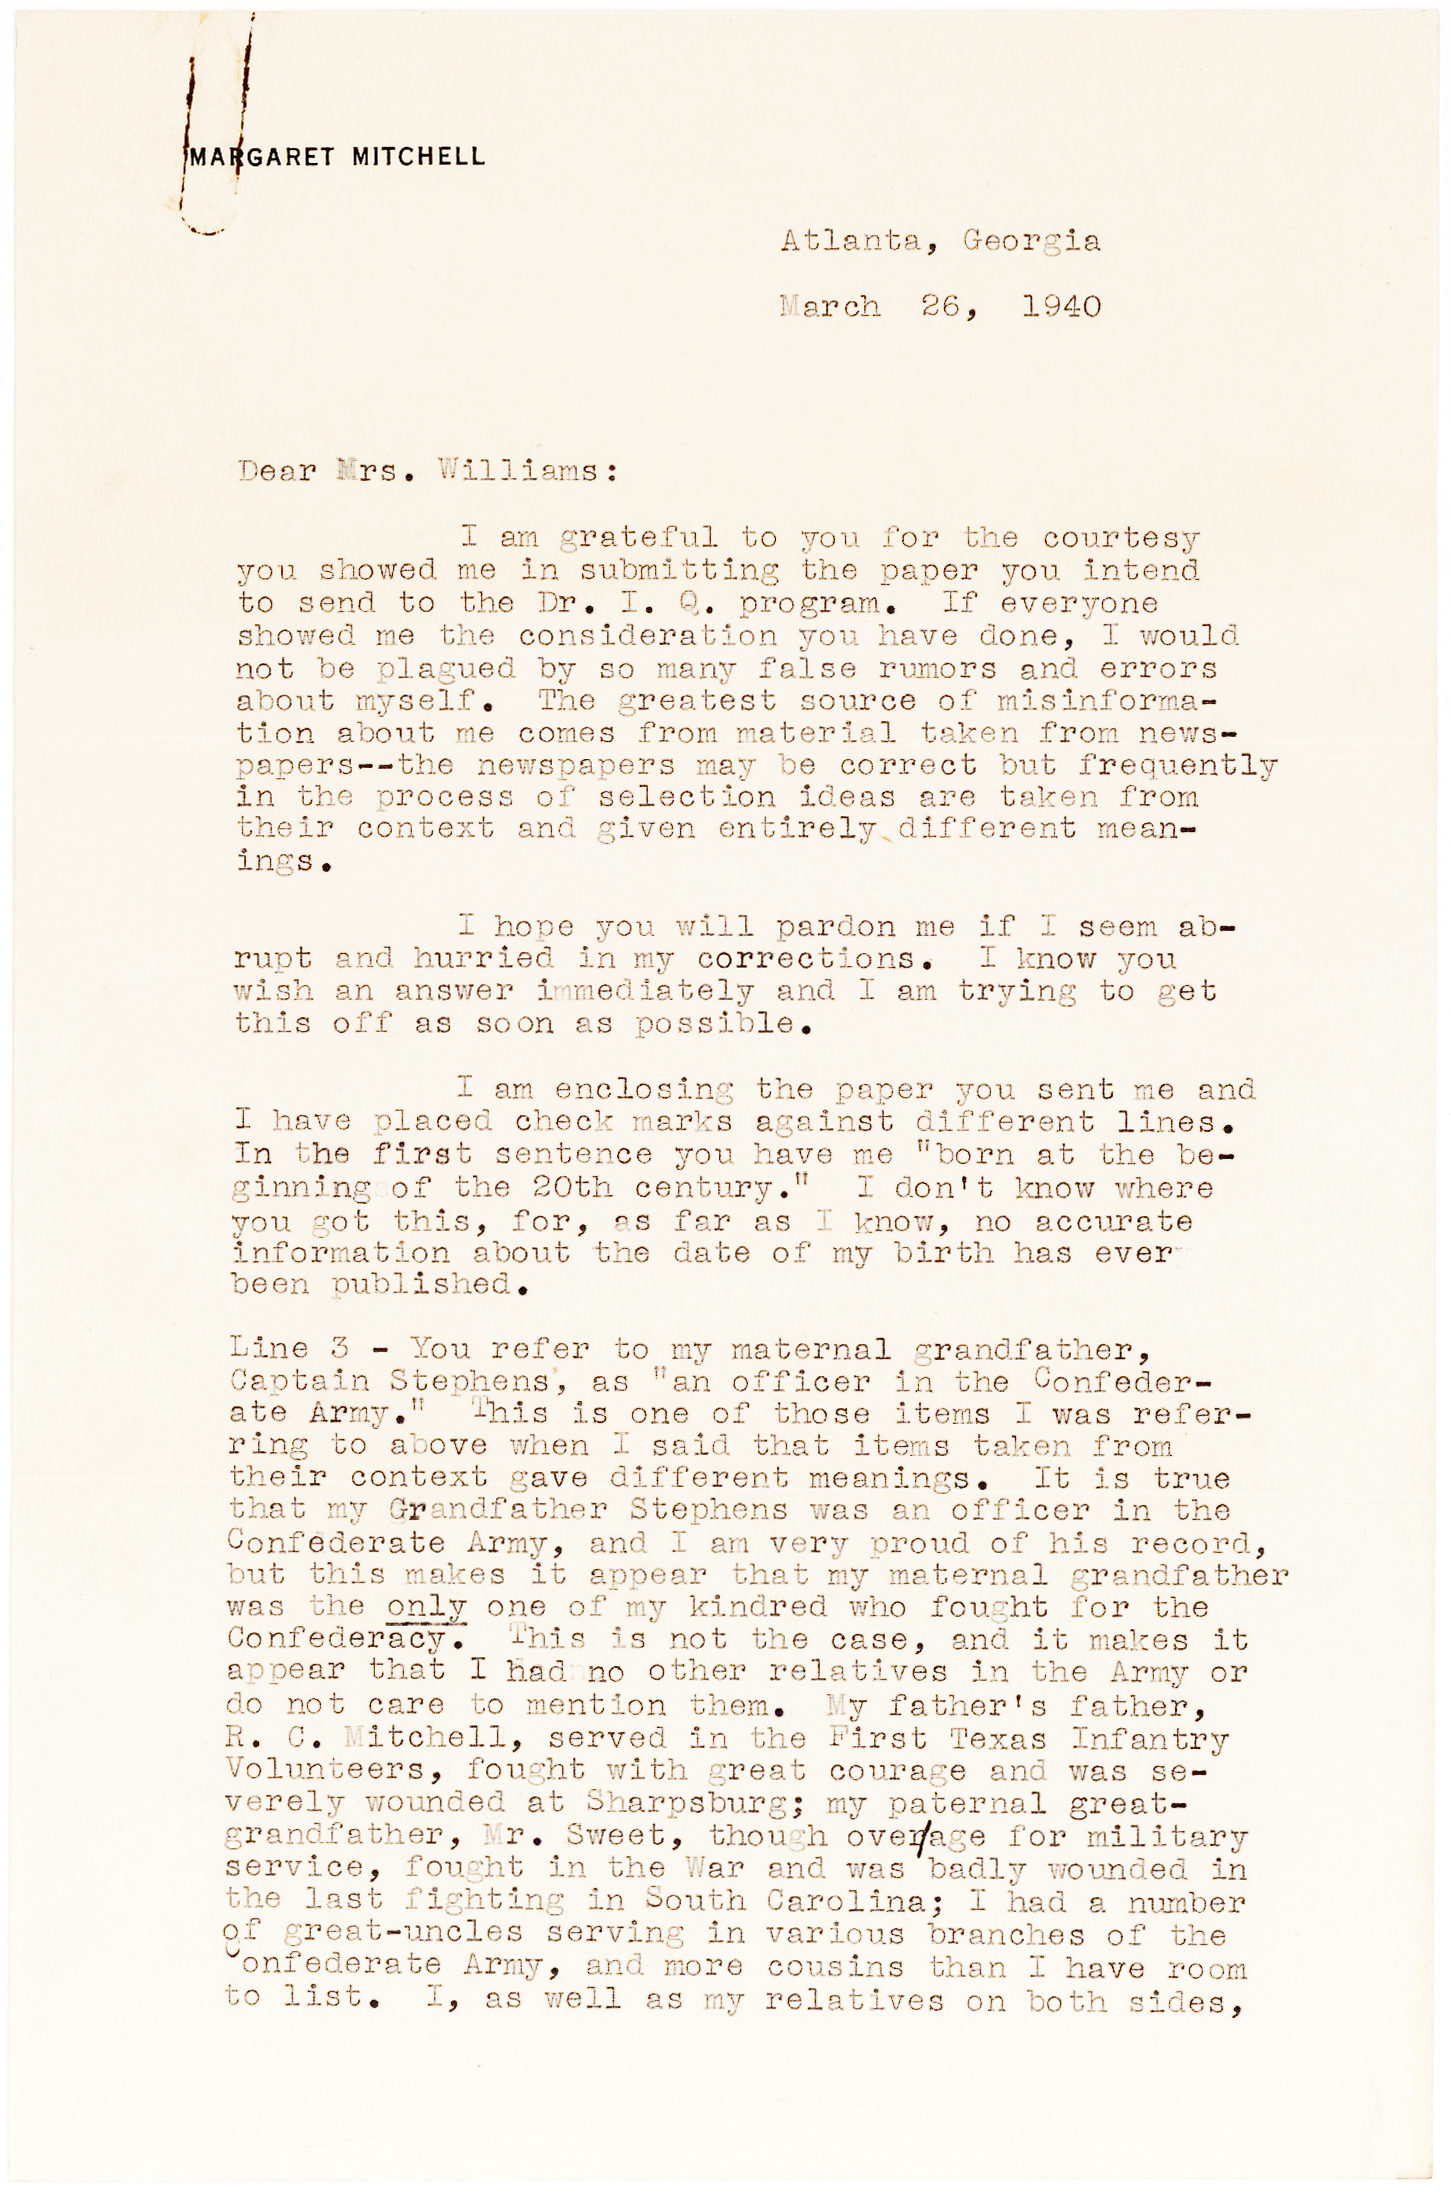 Remarkable Margaret Mitchell Letter about her Family's History and Participation in the Civil War